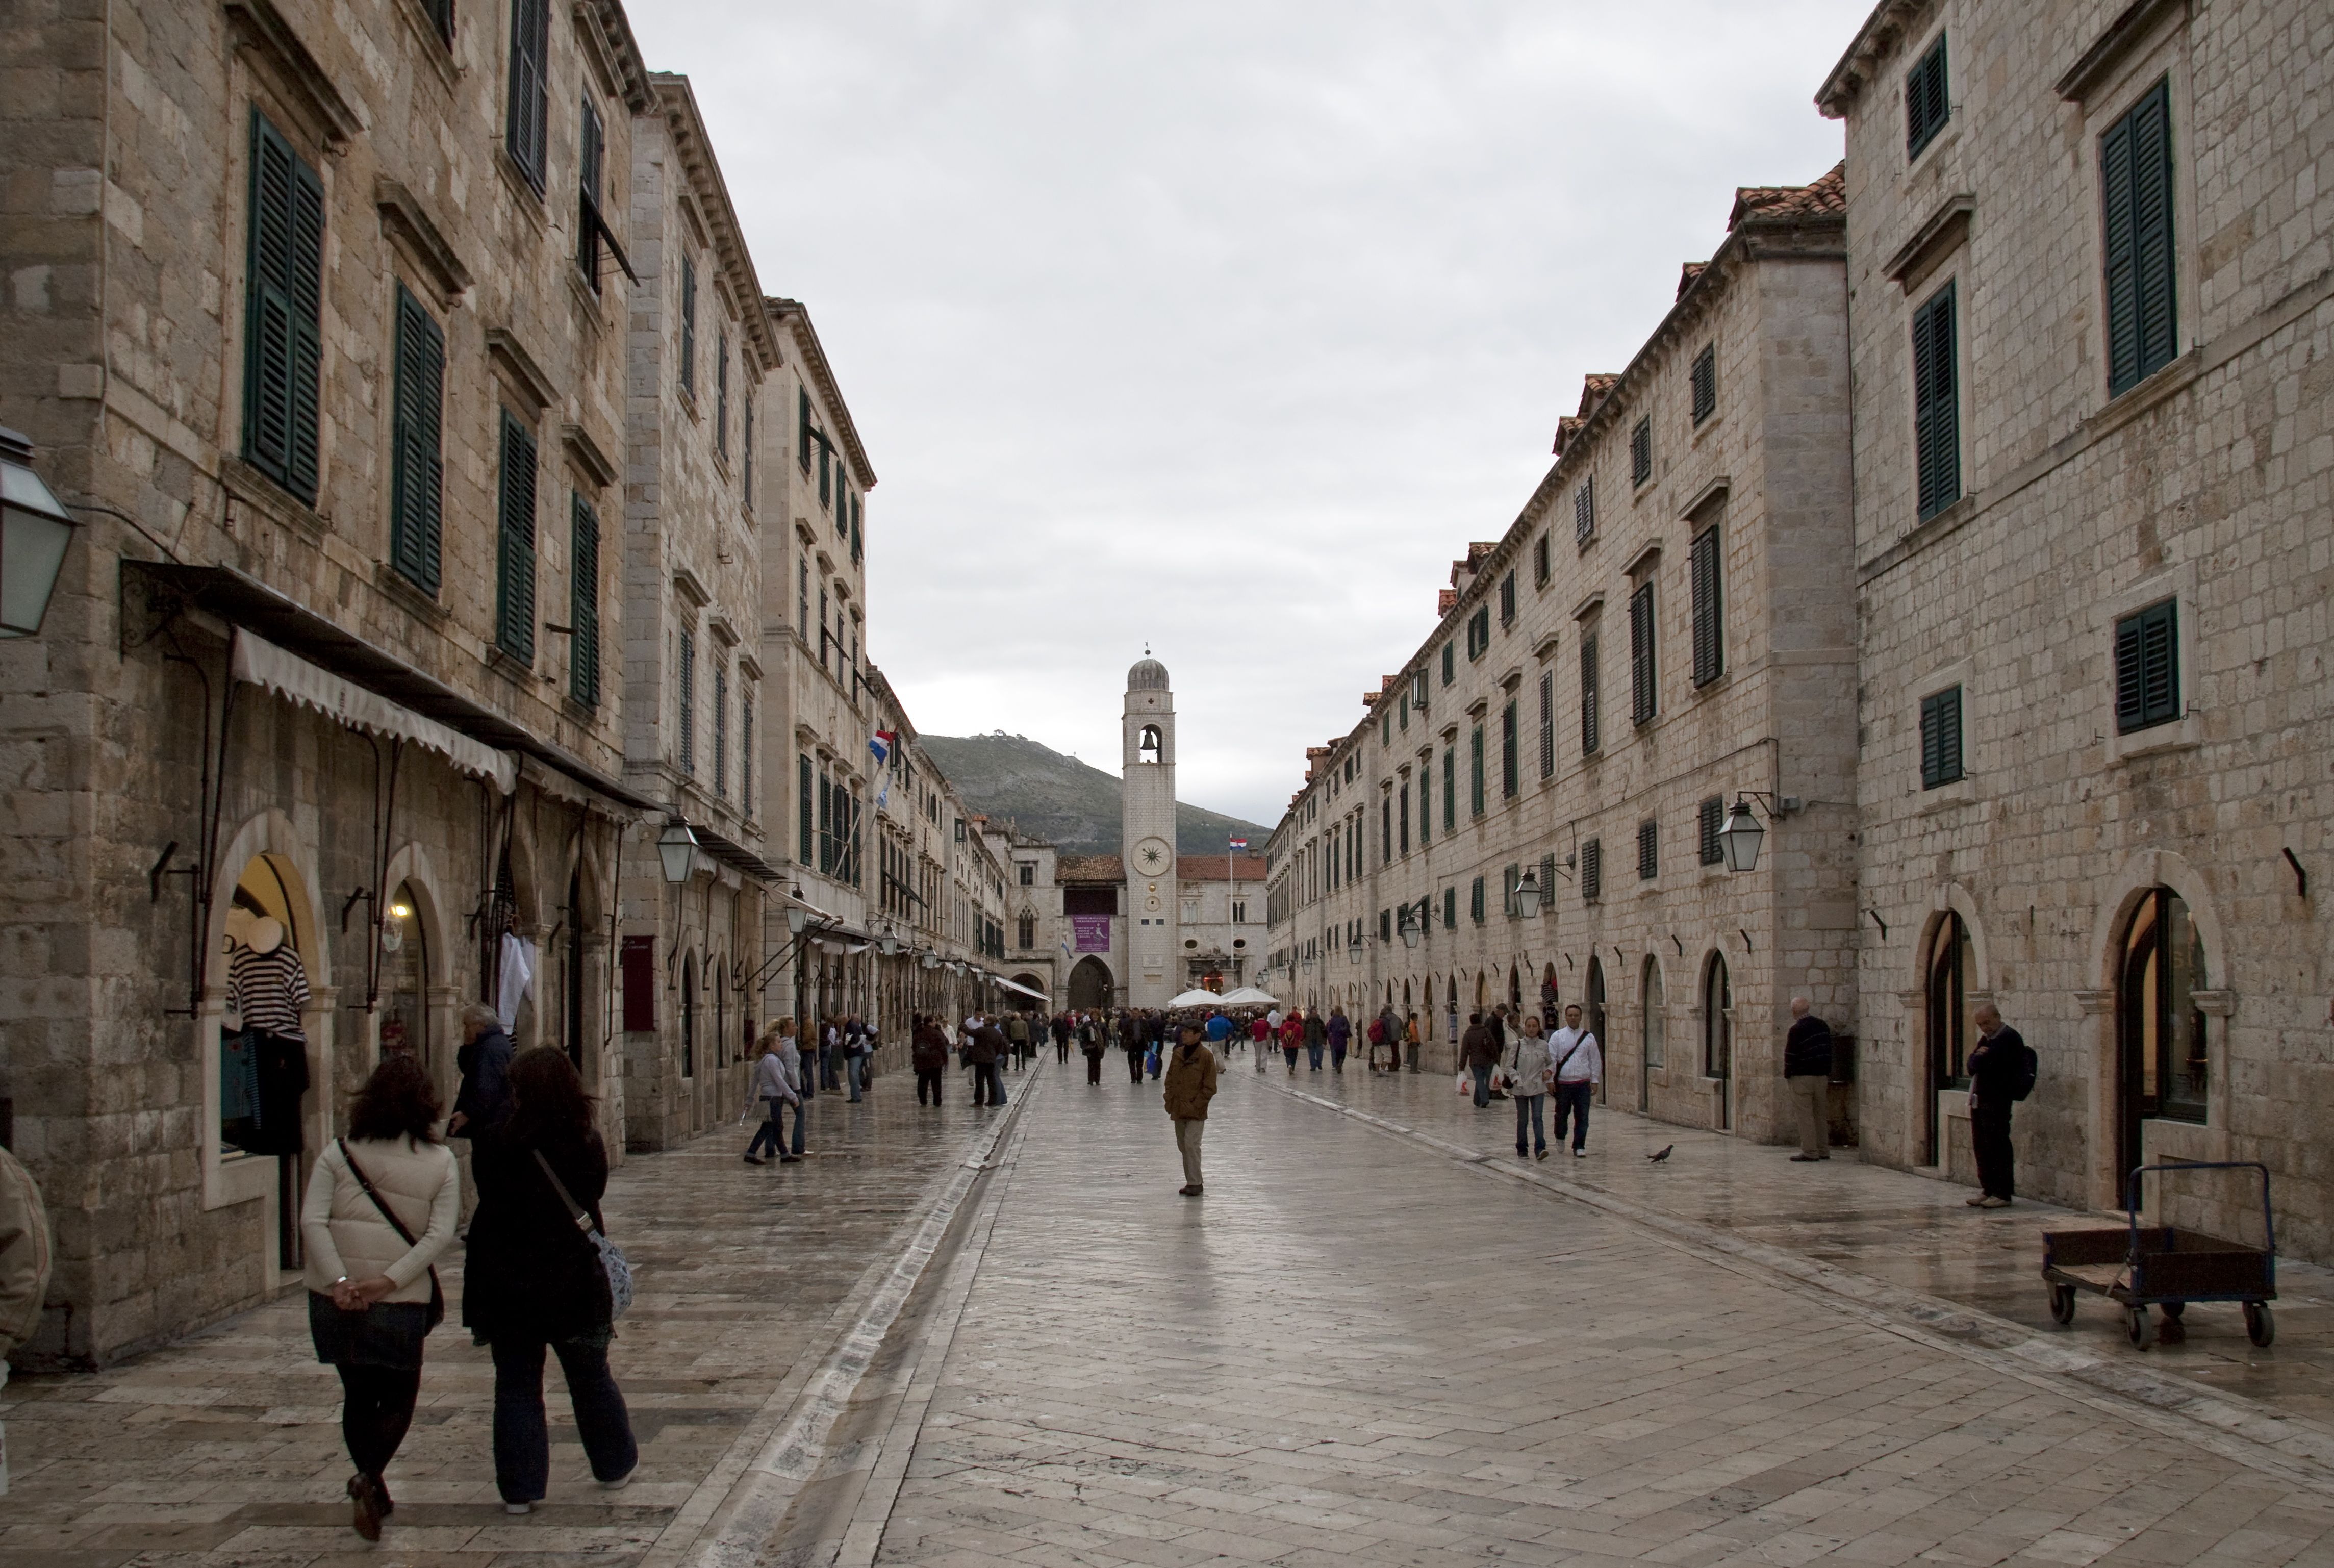 oldtown croatia ways street - photo #11